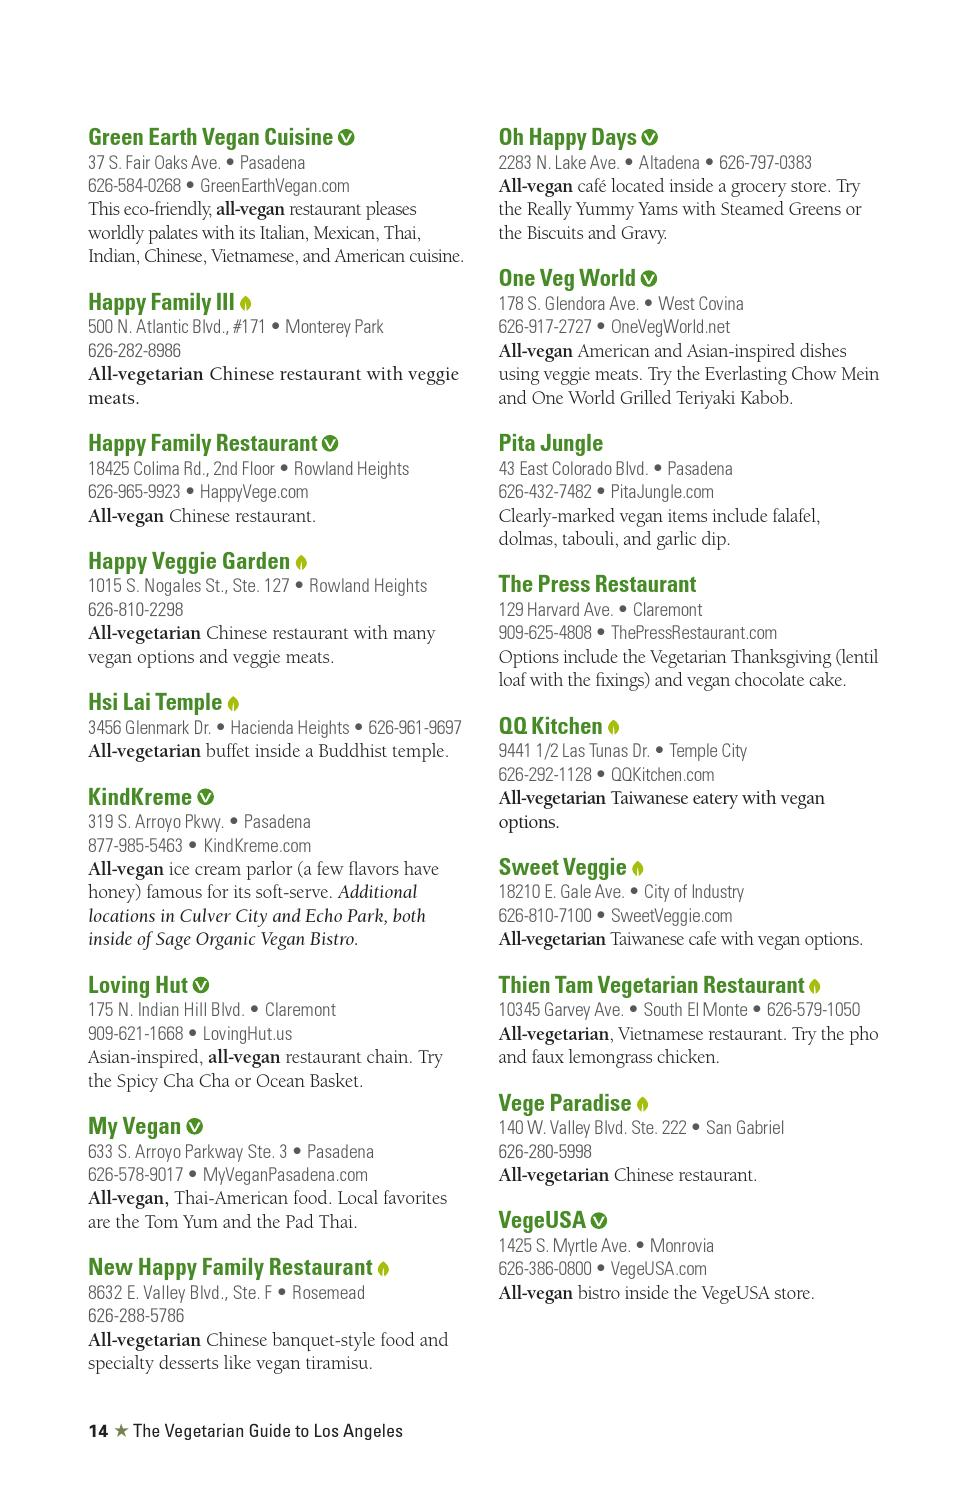 Veg Guide to Los Angeles 2014 by Vegan Future - issuu